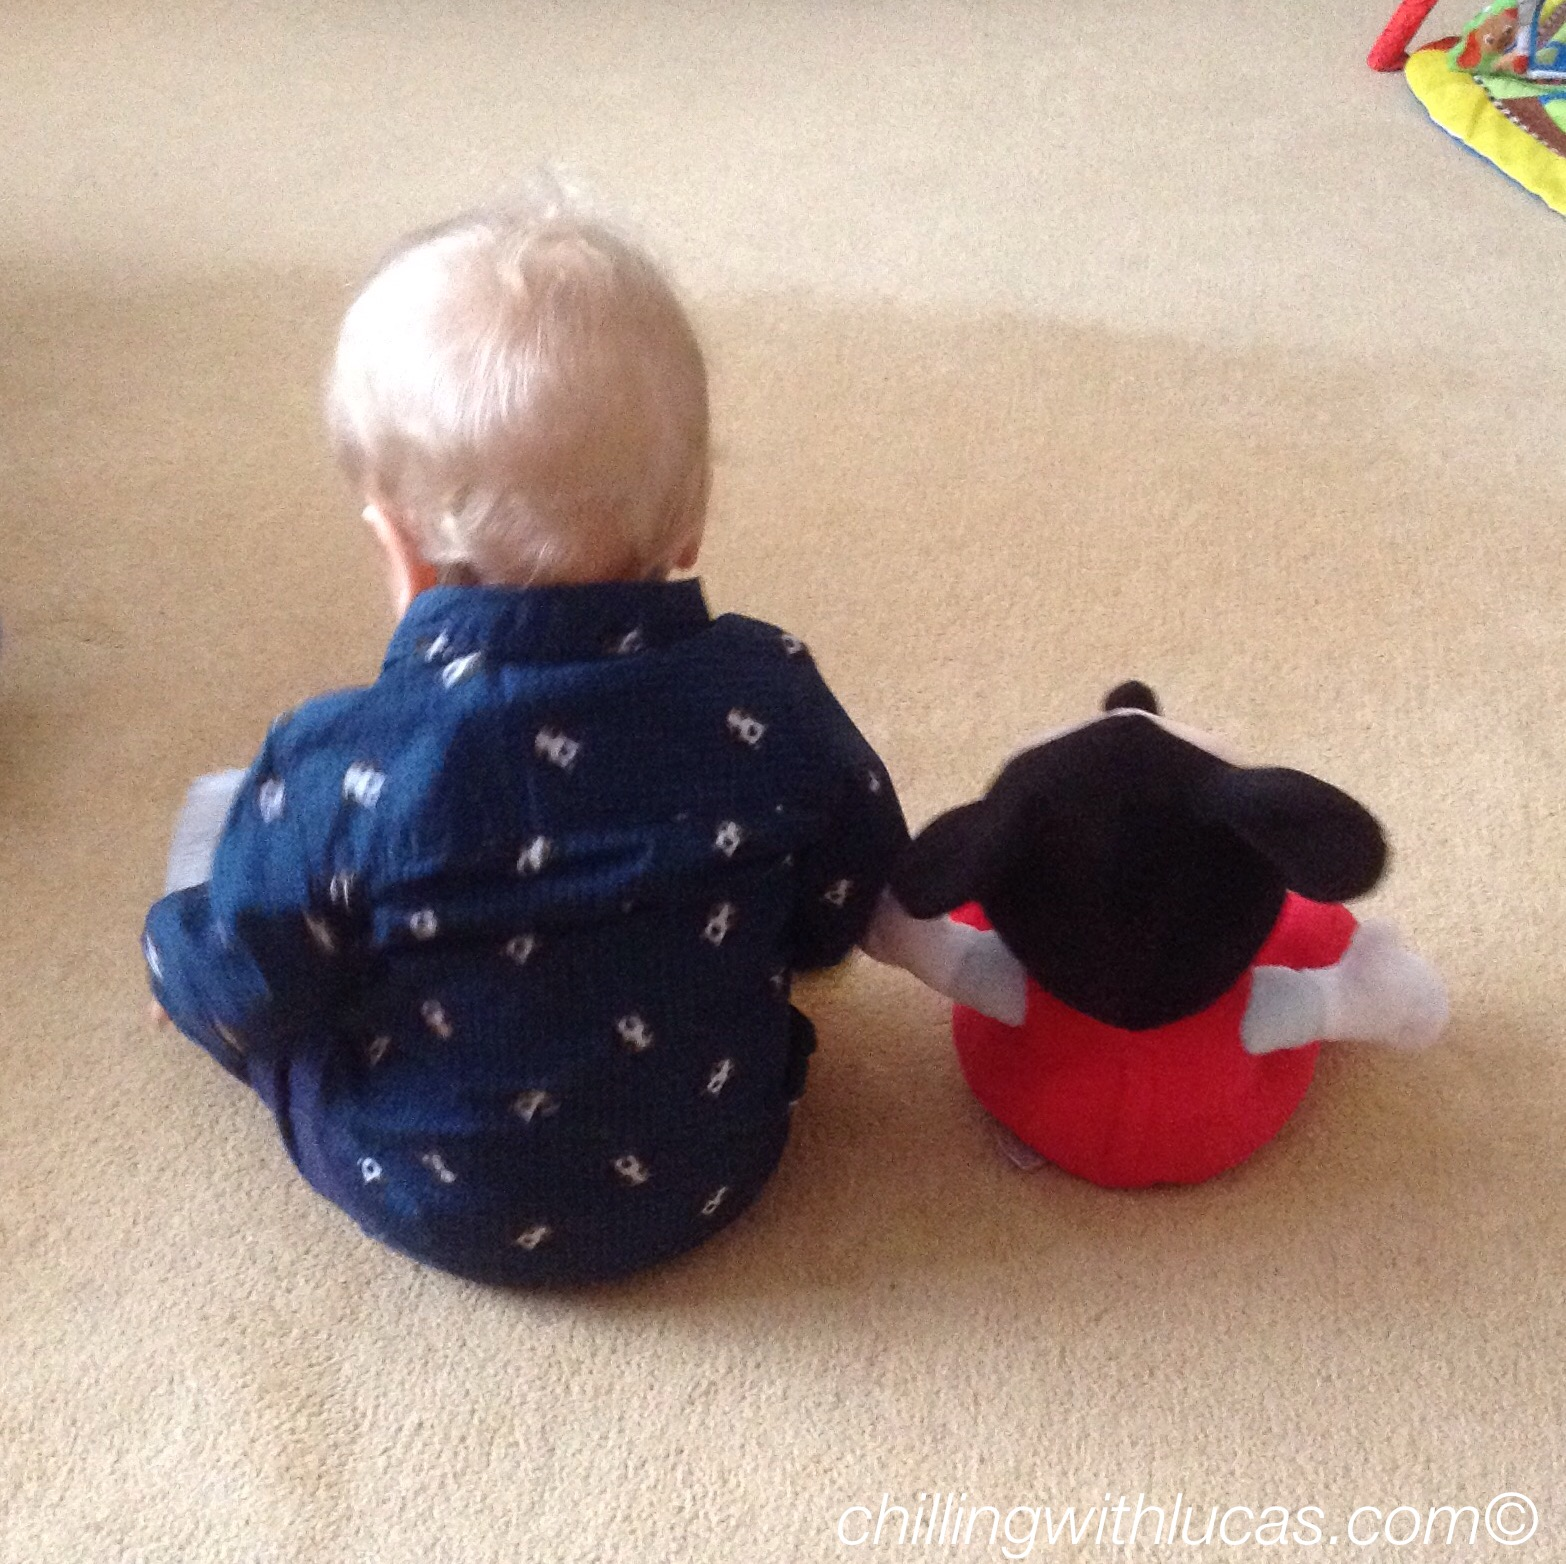 lucas is a baby with blonde hair, he is sitting up wearing a navy shirt and mickey teddy next to him